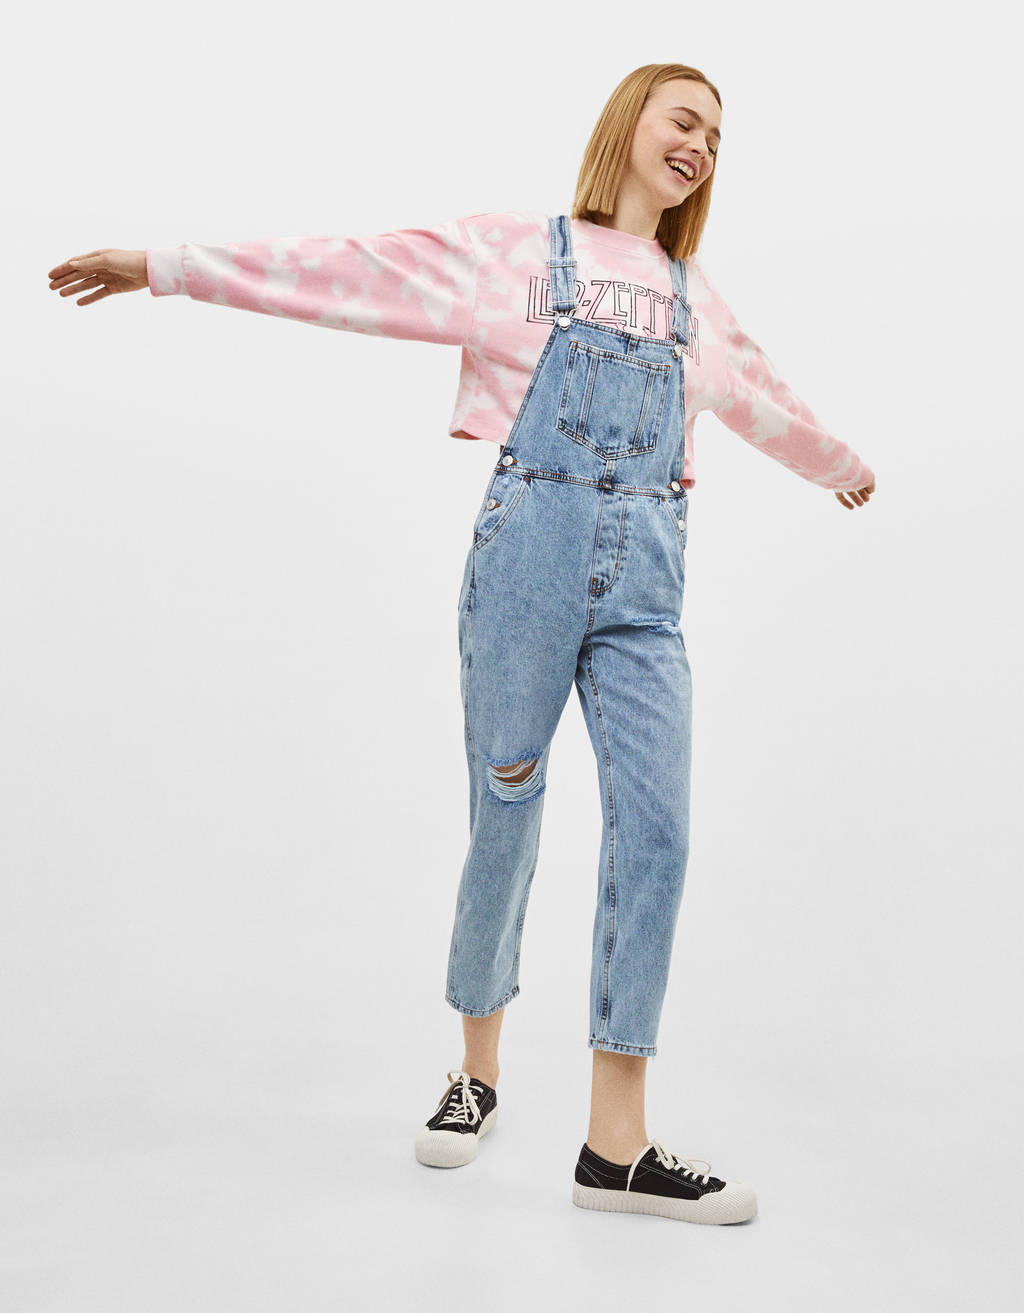 uk availability 5a2b5 c01a5 Salopette en jean - Robes - Bershka Algérie